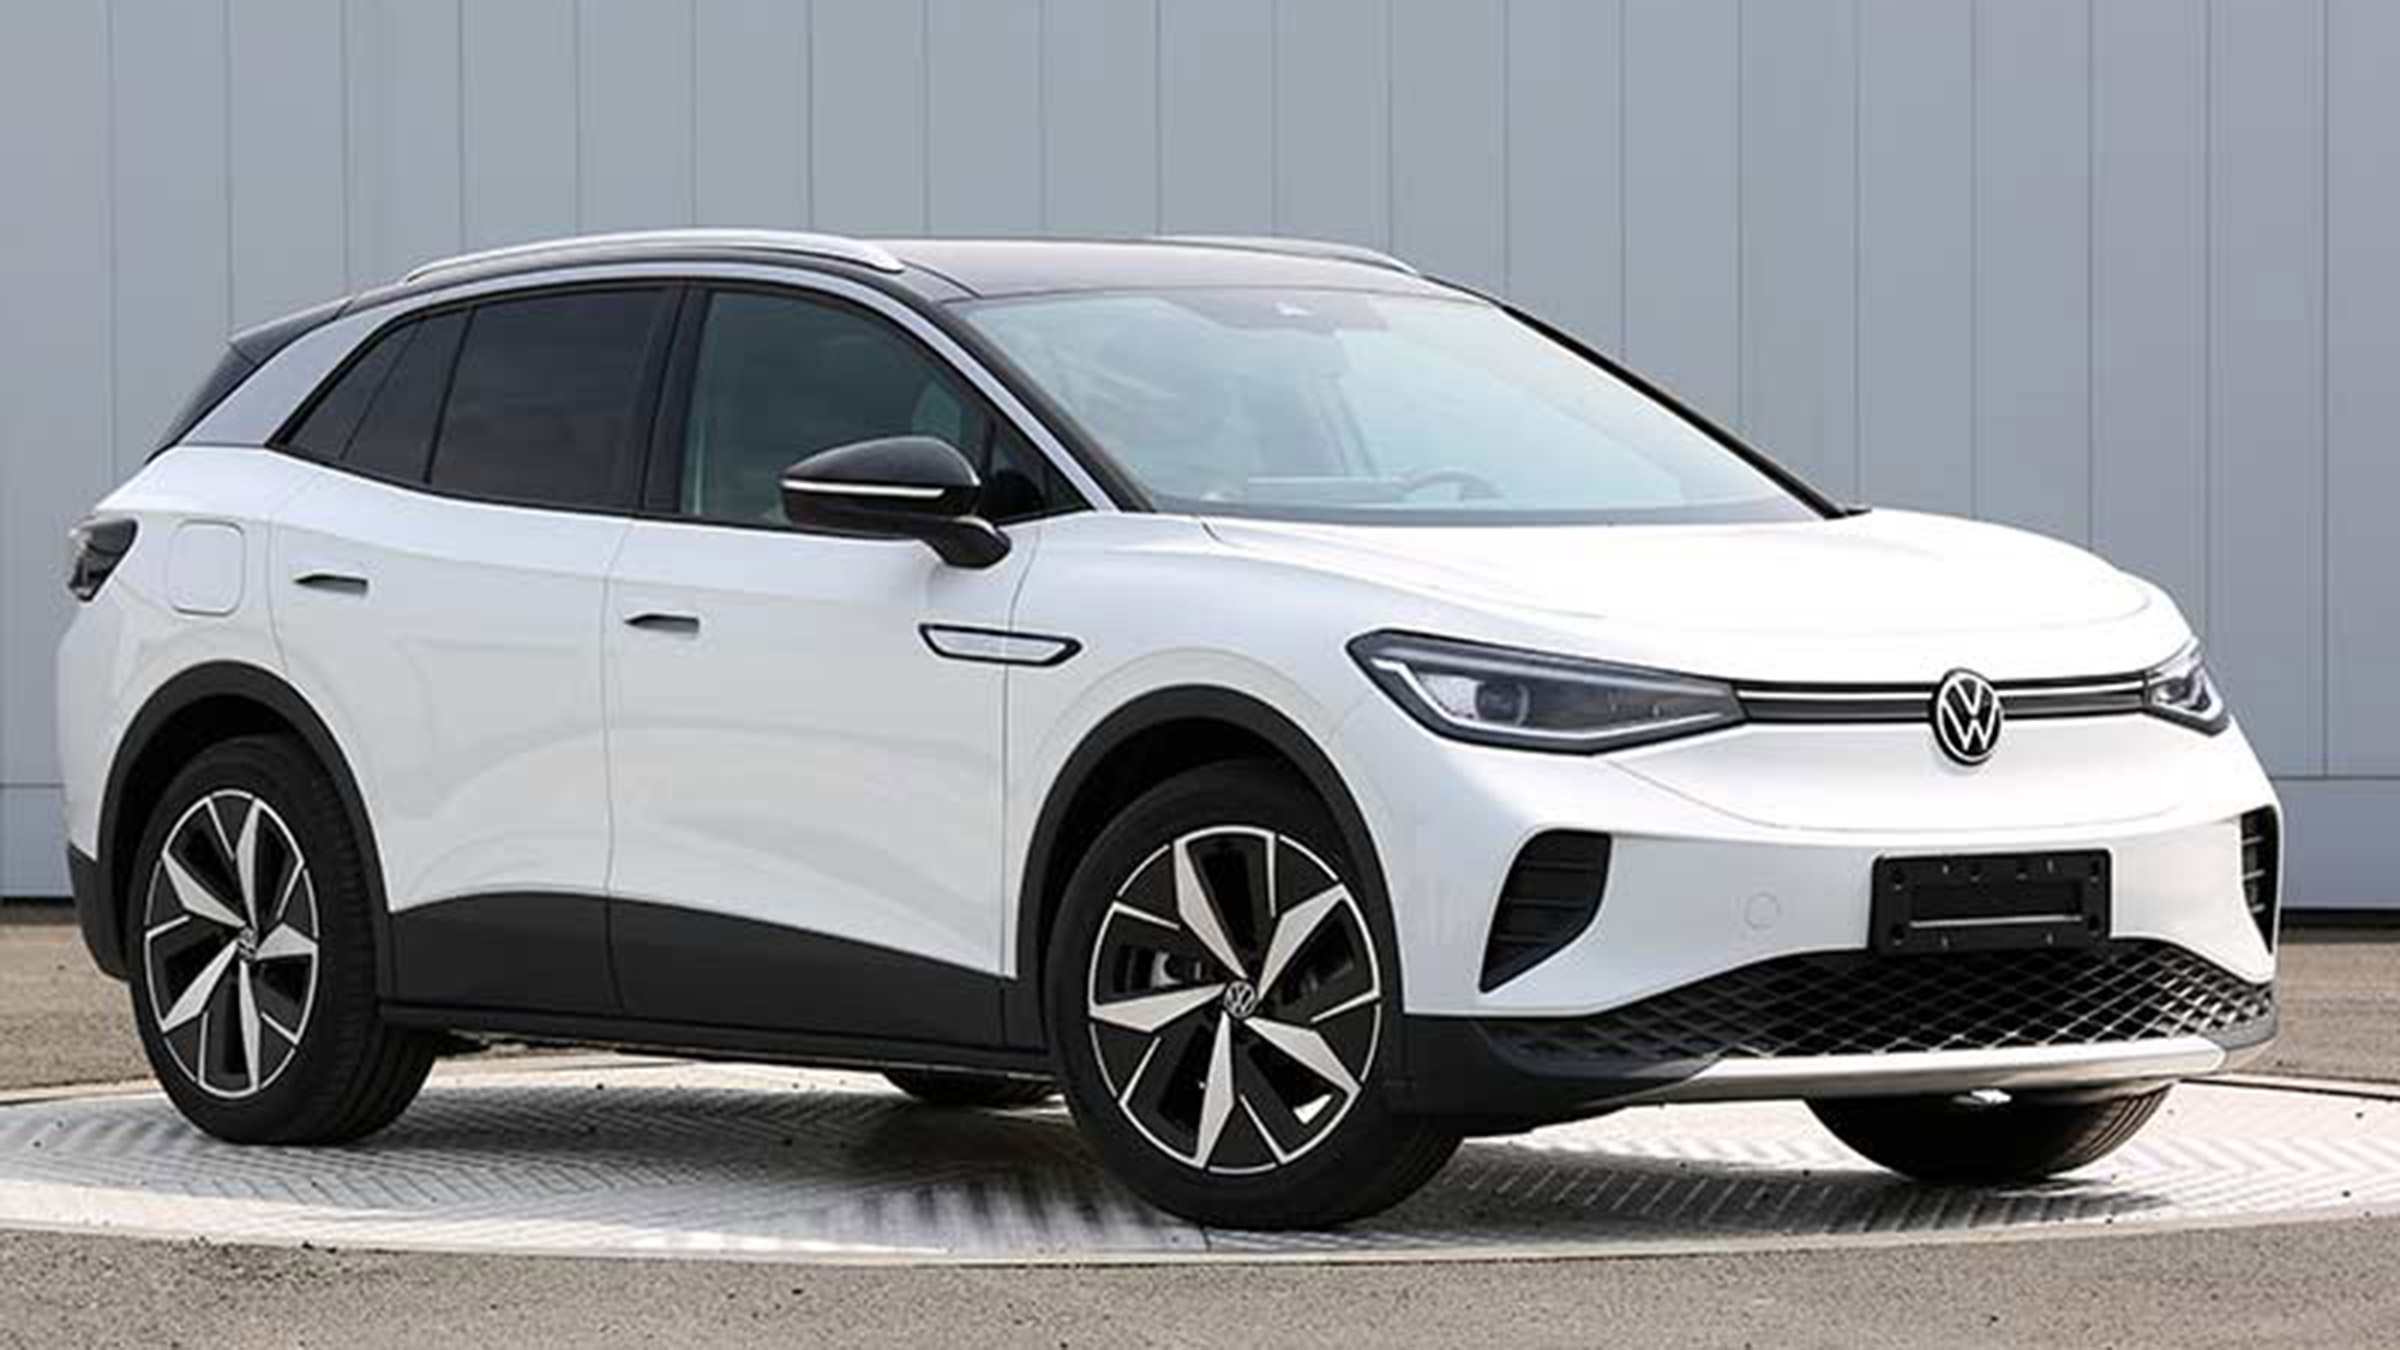 New 2021 Volkswagen ID.4 electric SUV leaked in revealing ...